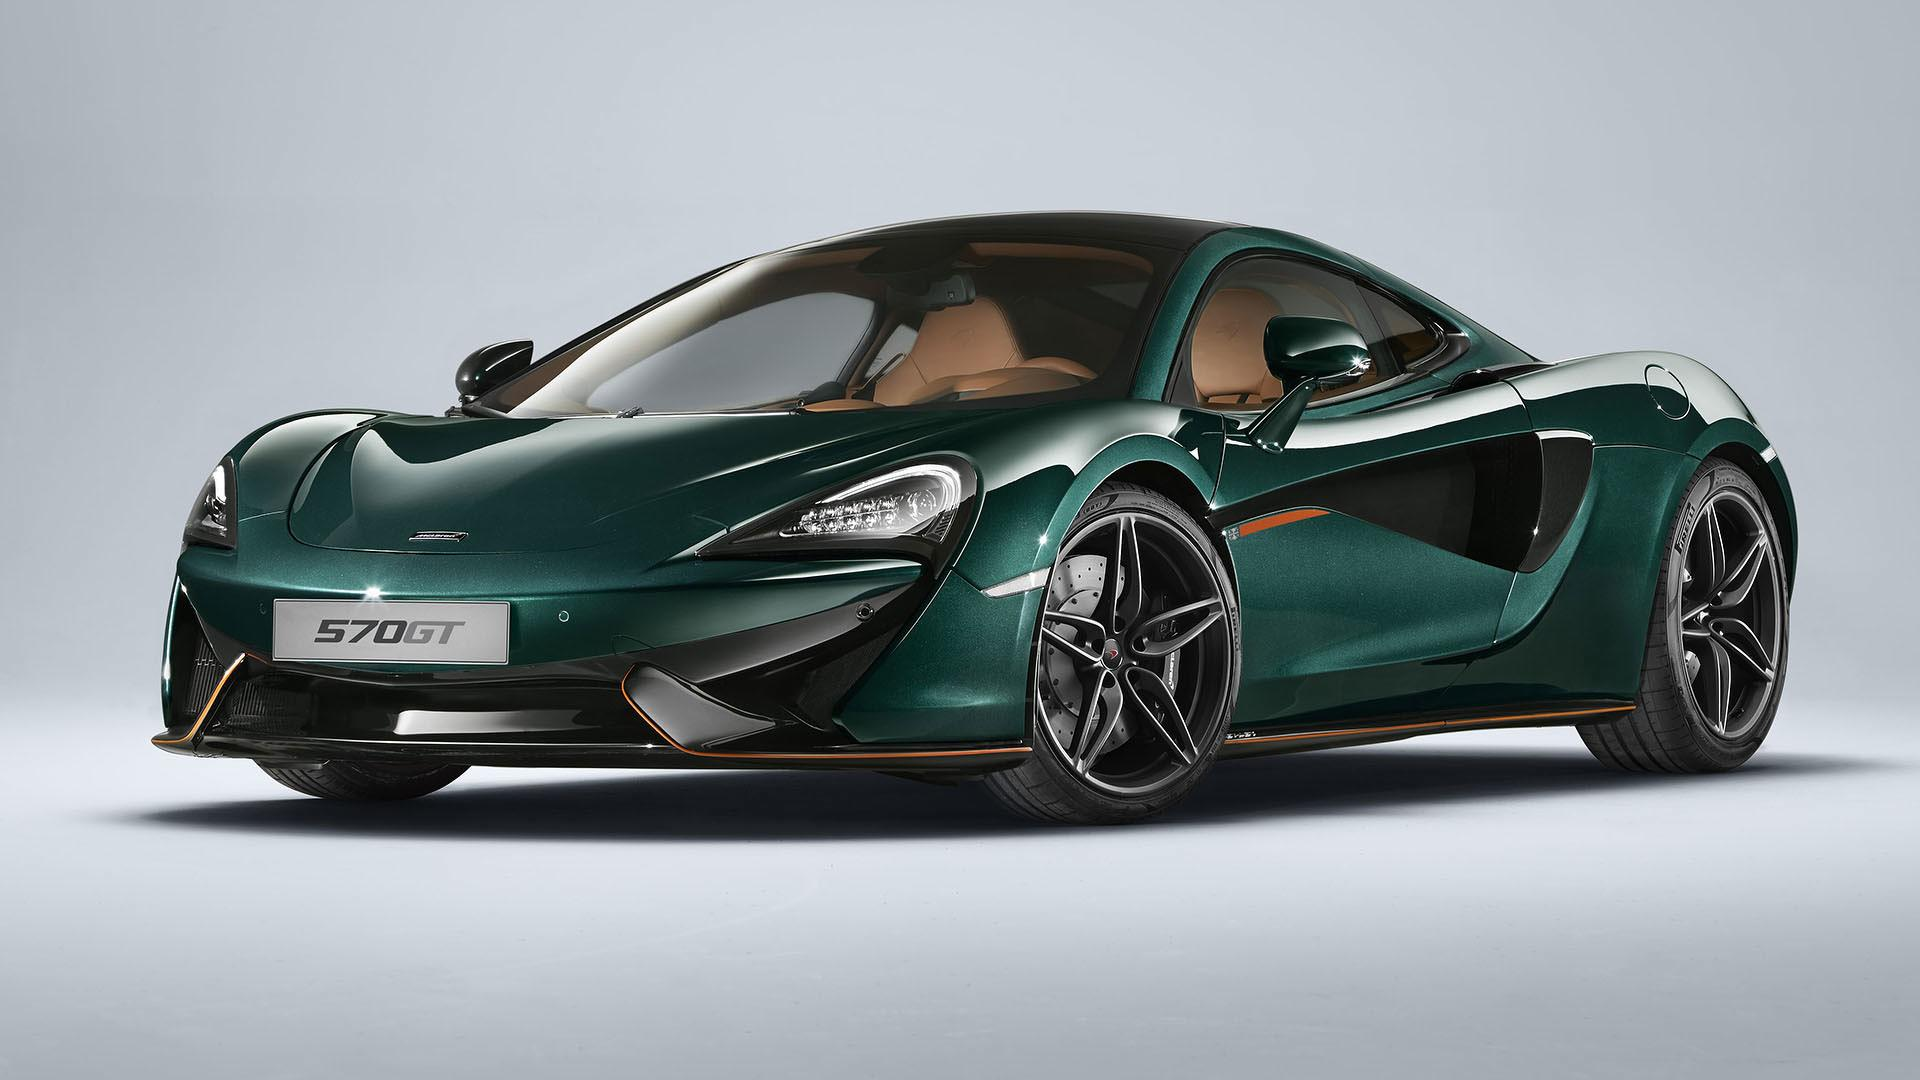 Mclaren 570gt Gets Limited Edition Mso Treatment With Xp Green Paint Autoevolution